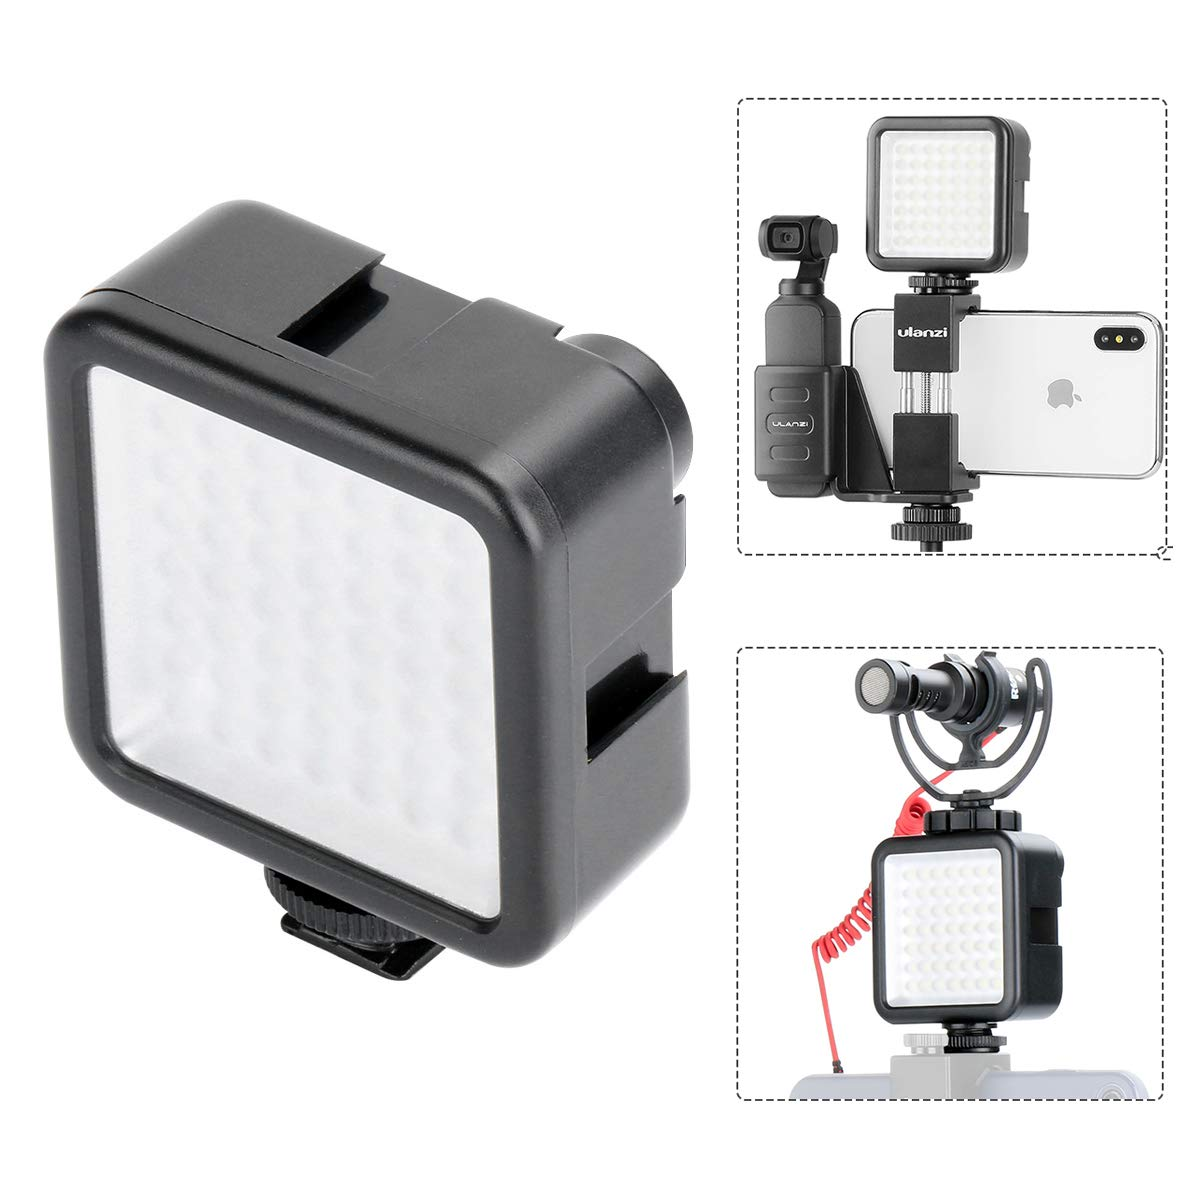 ULANZI W49 Pocket LED Video Light with 3 Cold Shoe Mounts 49 LED Bulbs Vlog Photo Fill Light on Camera for DJI OSMO Pocket Sony A6400 A6300 Canon DSLR Cameras Wedding Interview Macrophotography by ULANZI Select